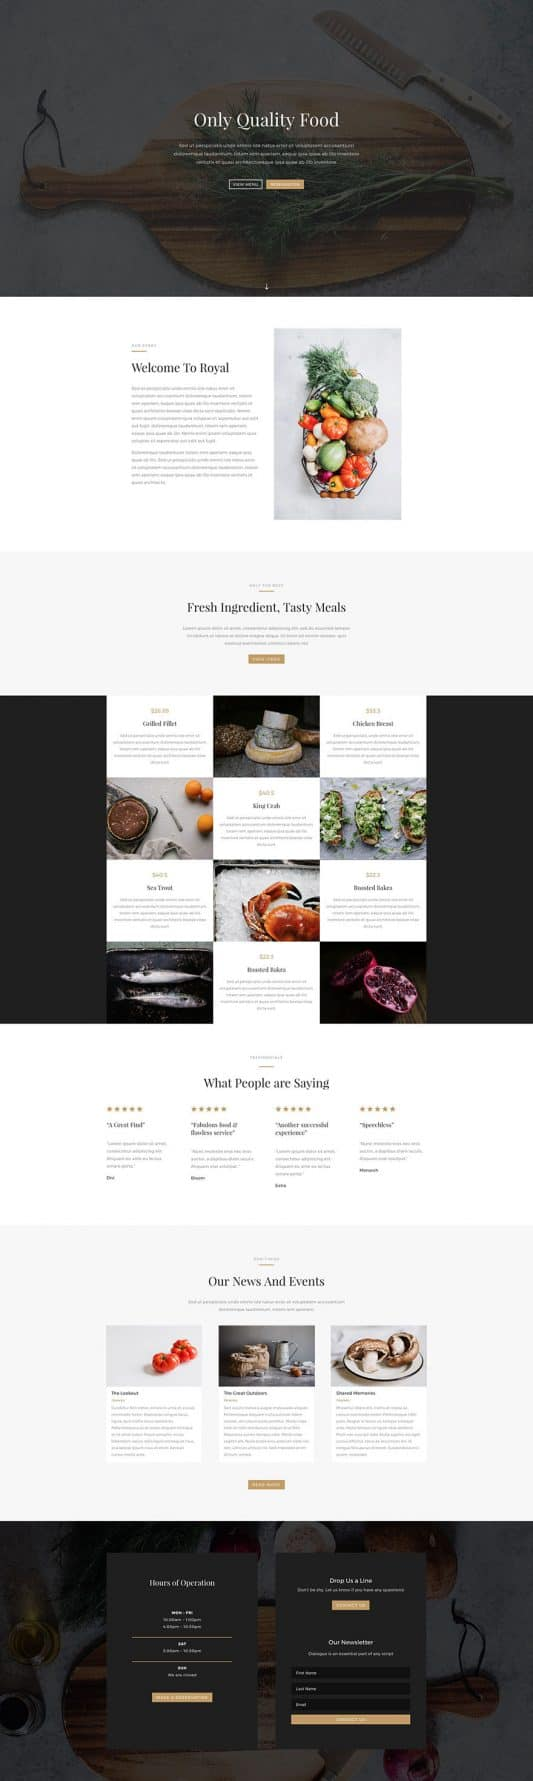 The Restaurant Page Style: Homepage Design 1